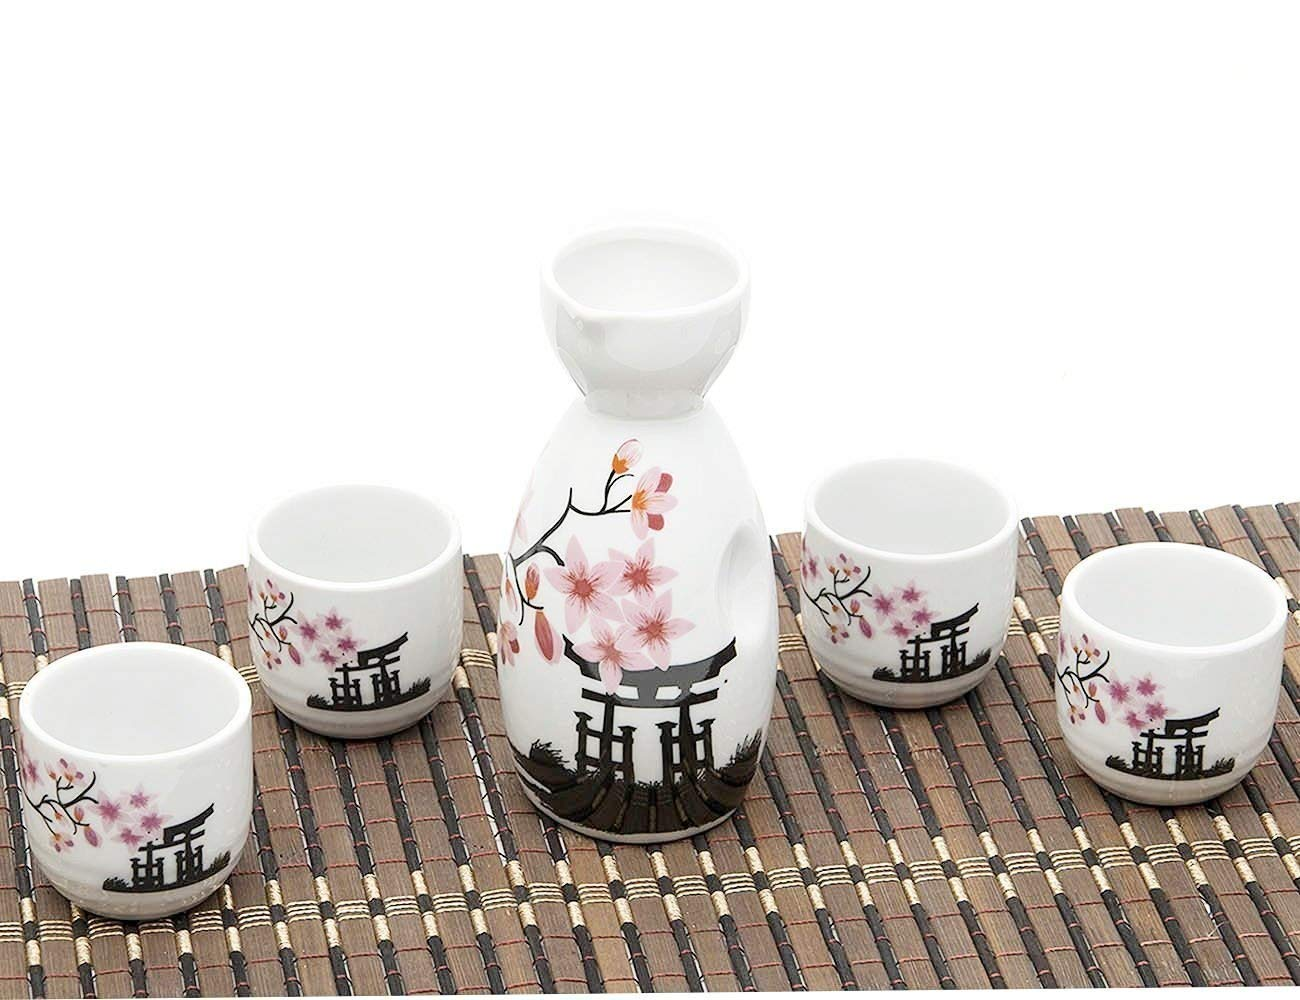 5 Piece Japanese Sake Cup Set Hand Painted Cherry Blossoms Flower Design Porcelain Pottery Traditional Ceramic Cups Crafts Wine Glasses B078MFKMPL